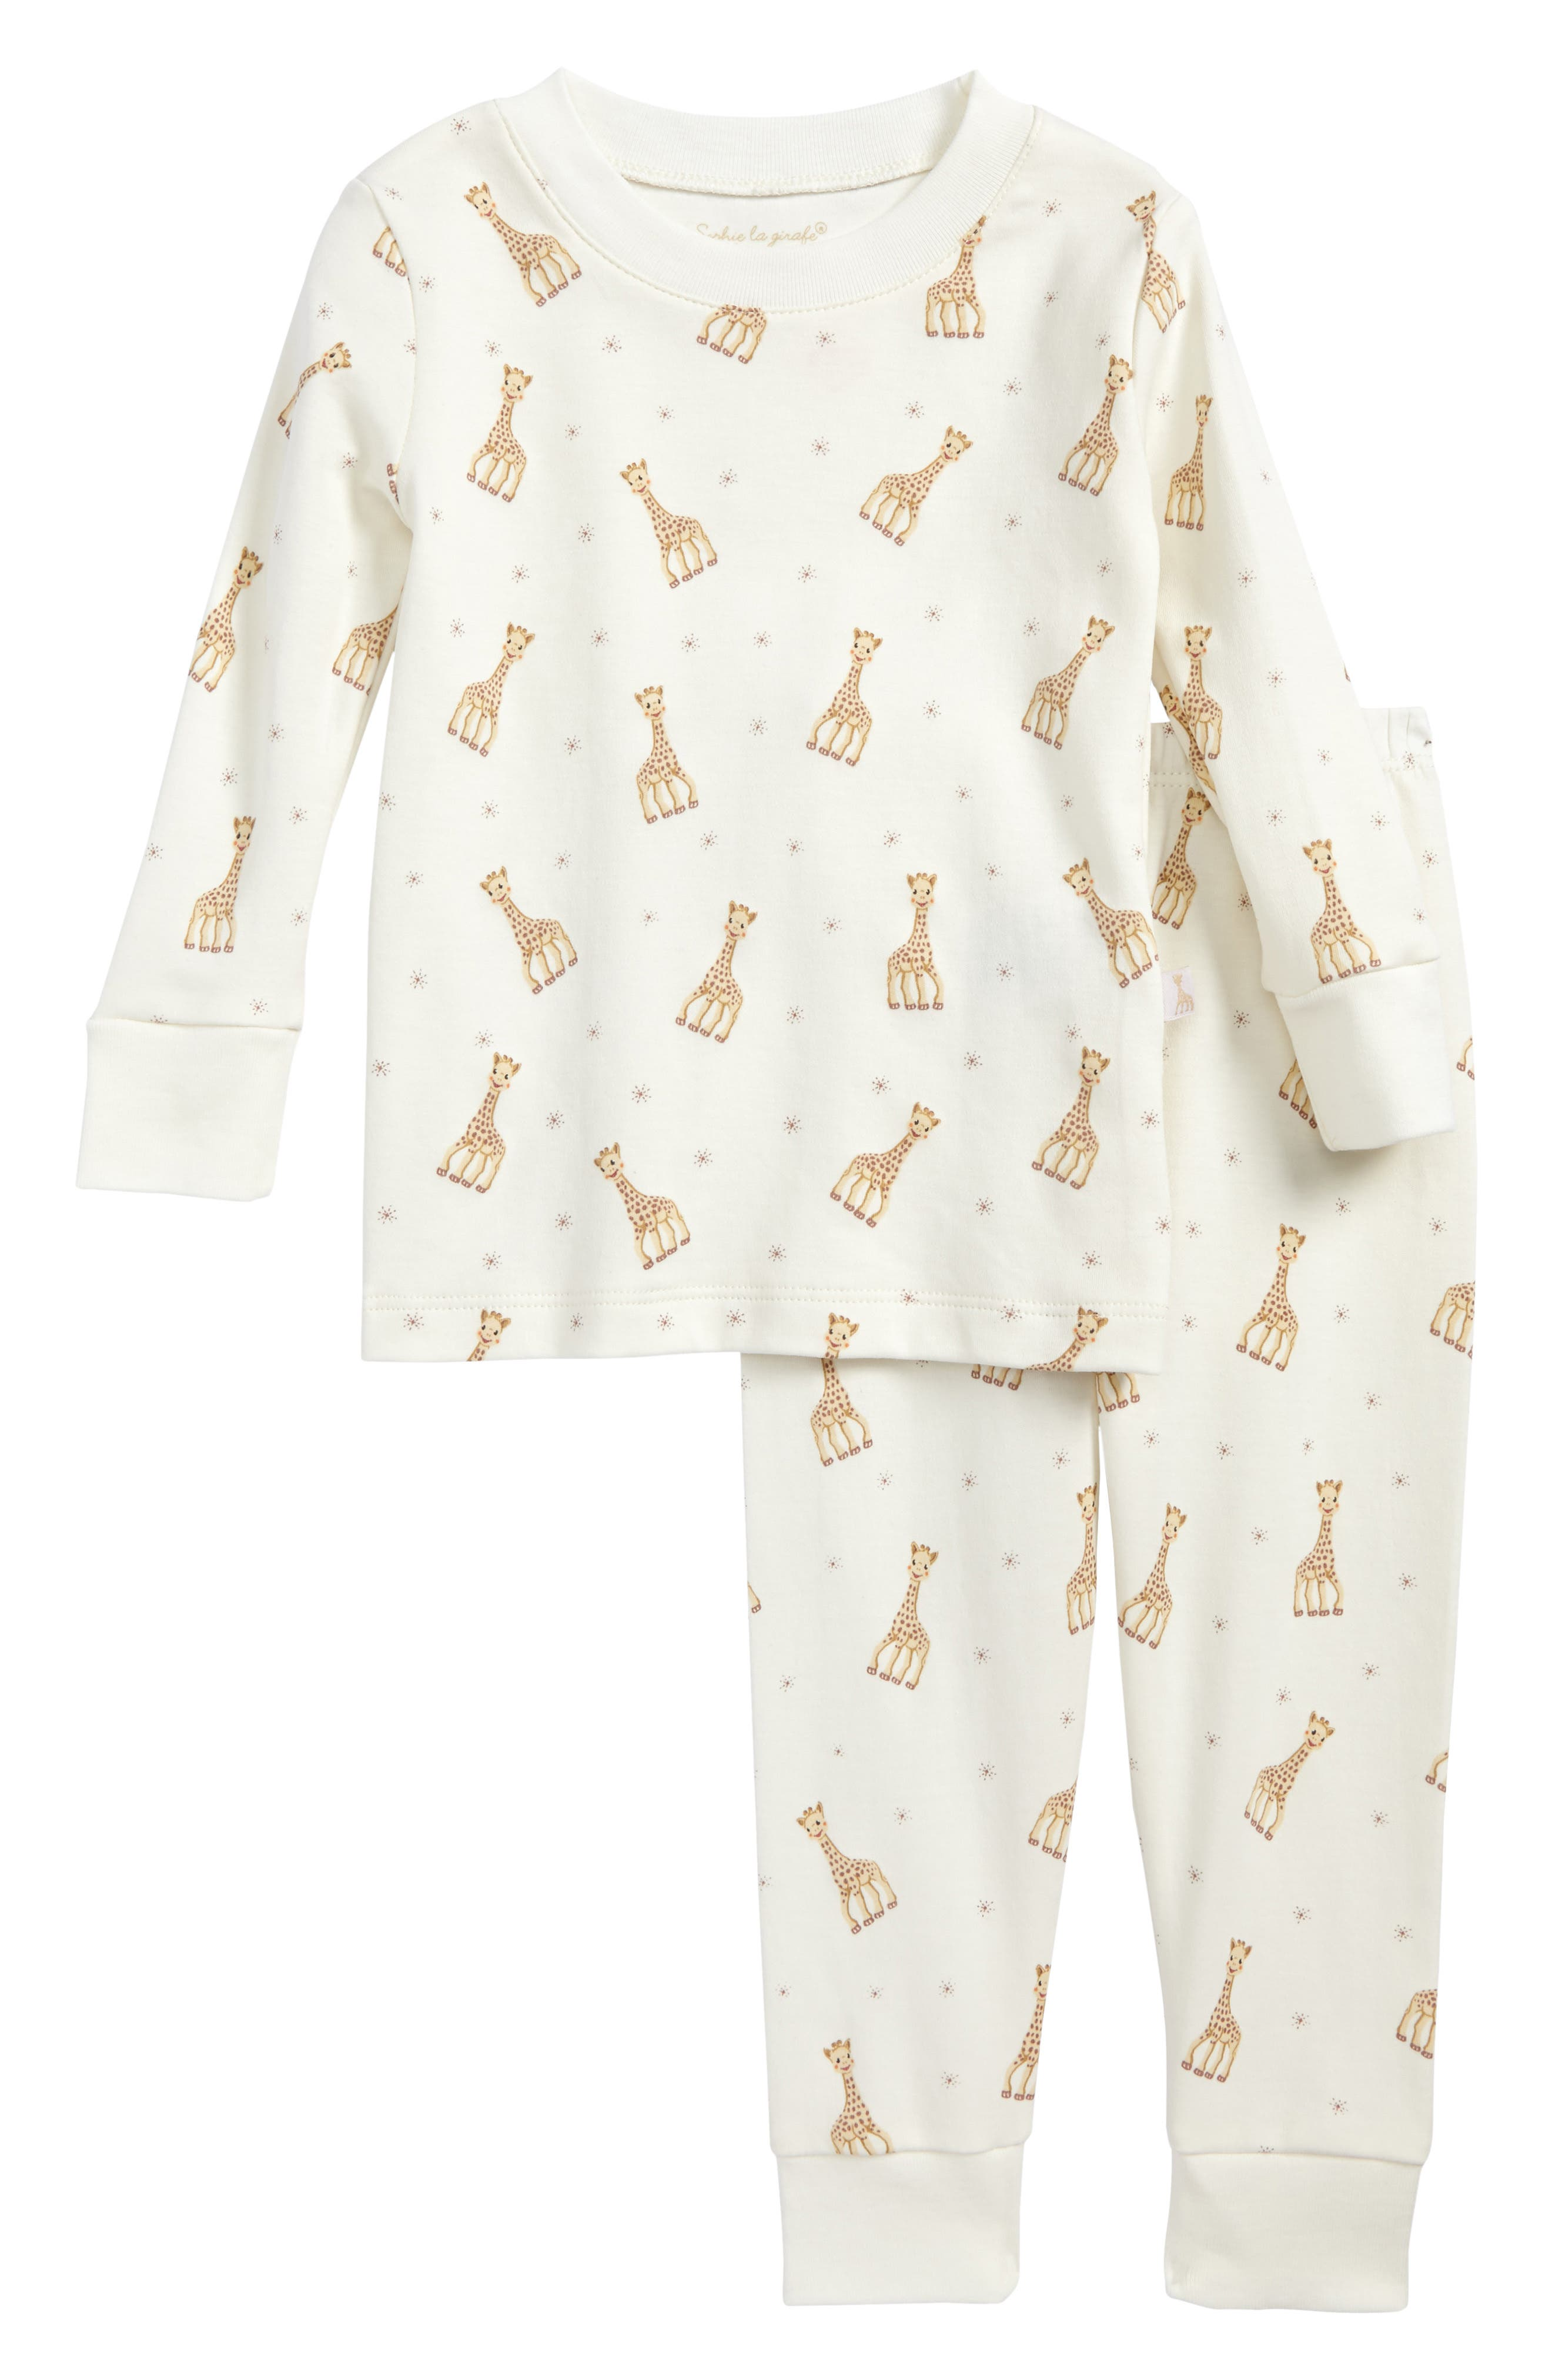 Sophie la Girafe Fitted Two-Piece Pajamas,                         Main,                         color, Ecru Print